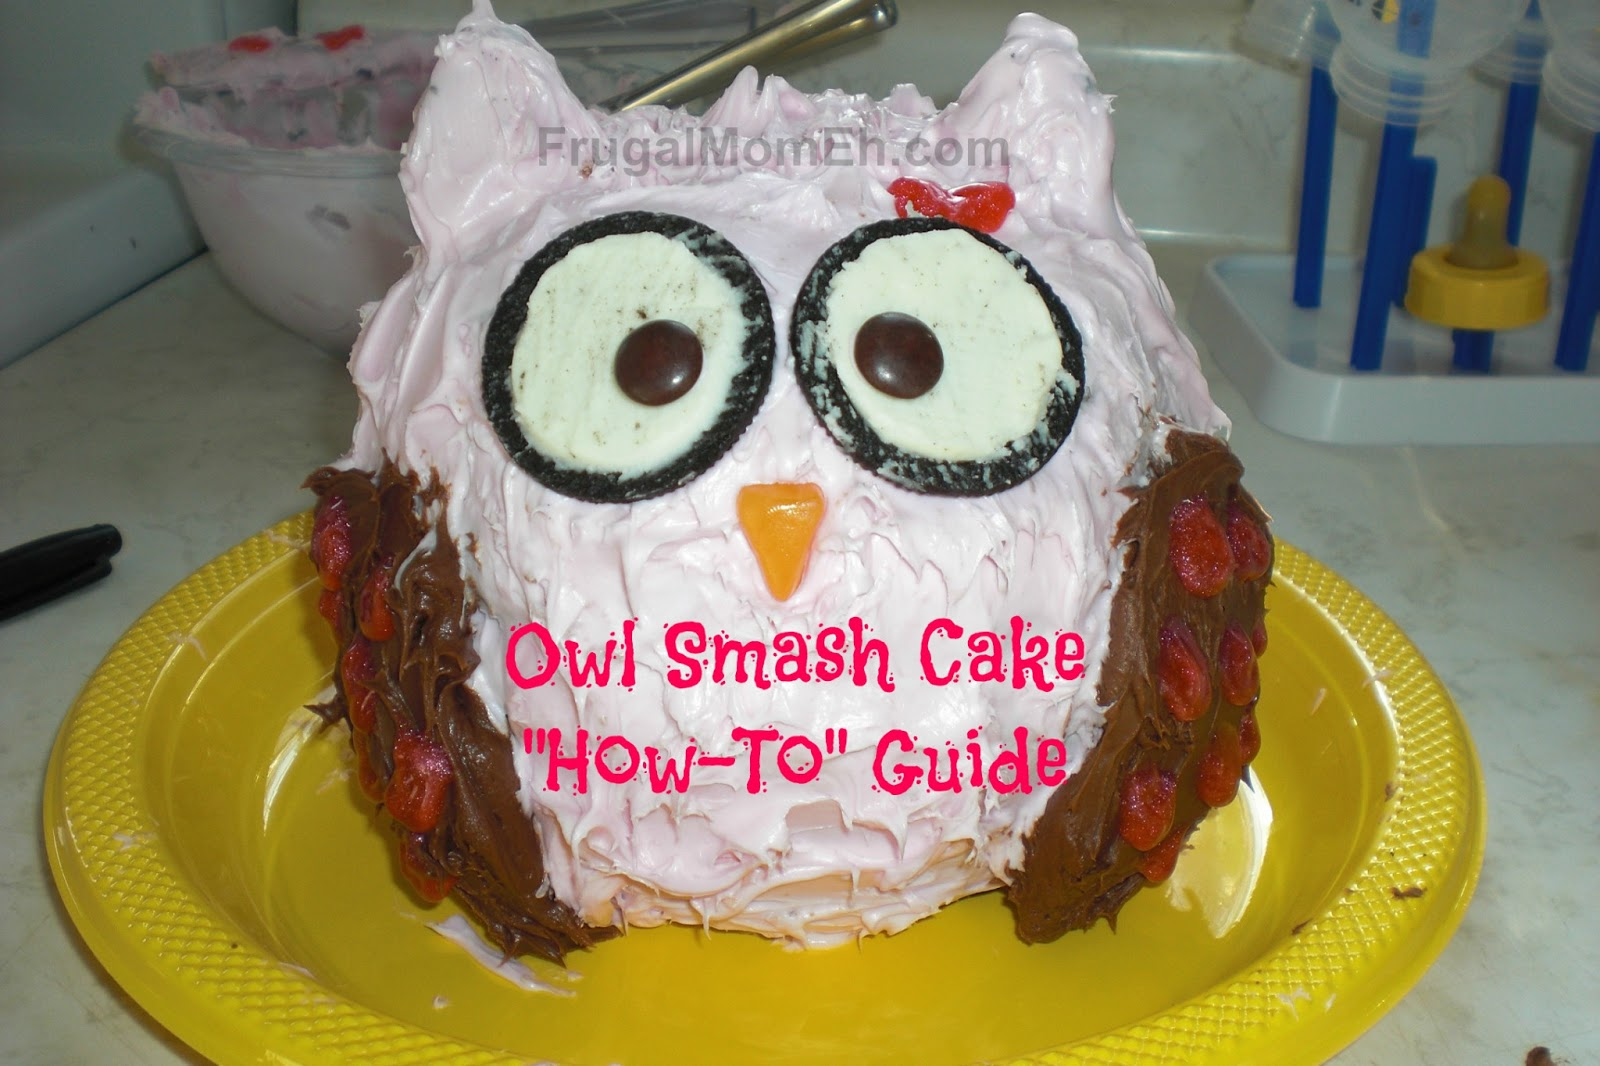 Check out the updated Owl Smash Cake Tutorial with brand new photos!